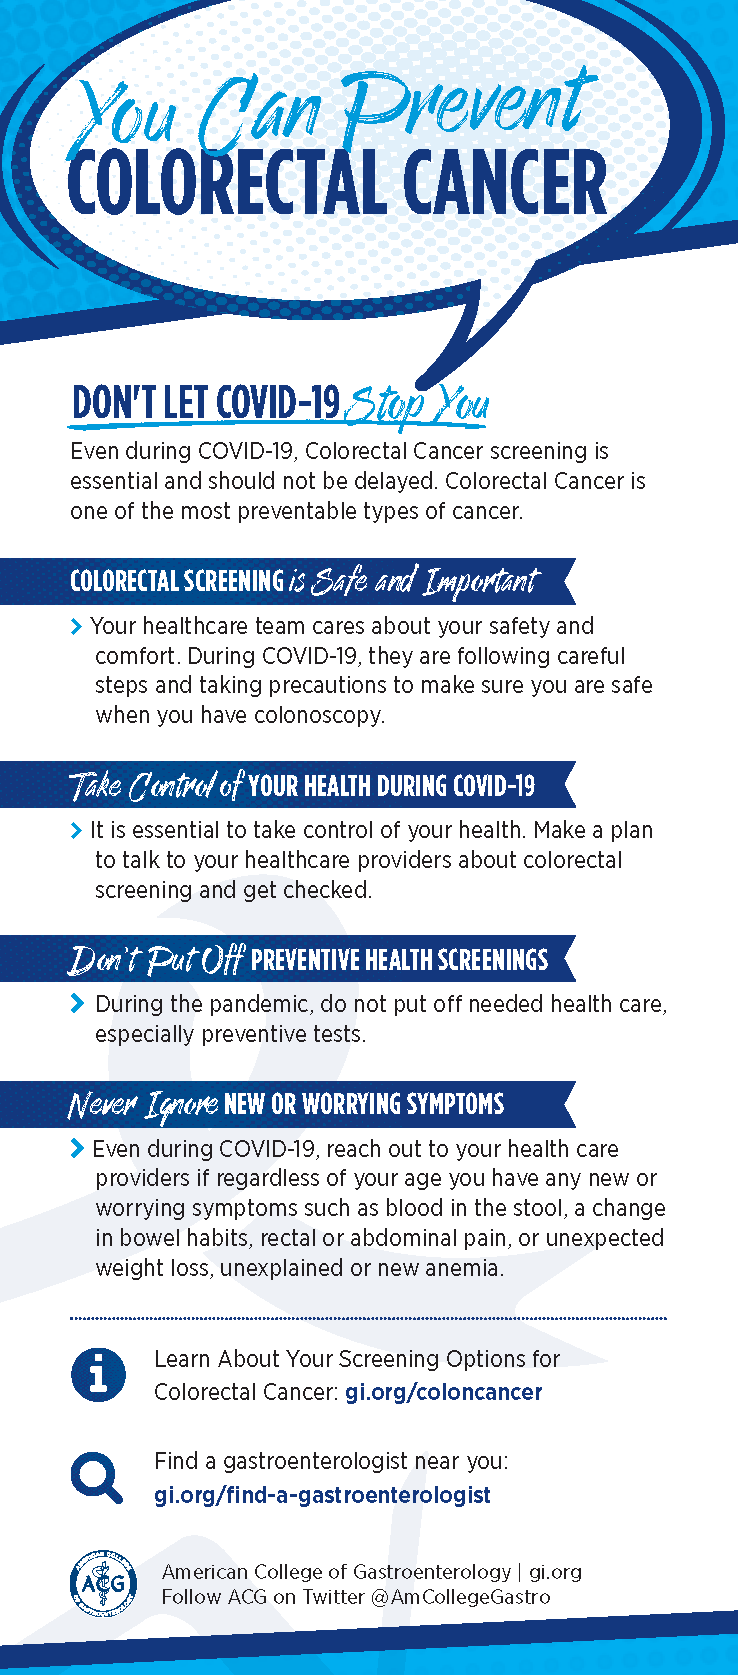 Don't Let COVID-19 Stop You! You Can Prevent Colorectal Cancer